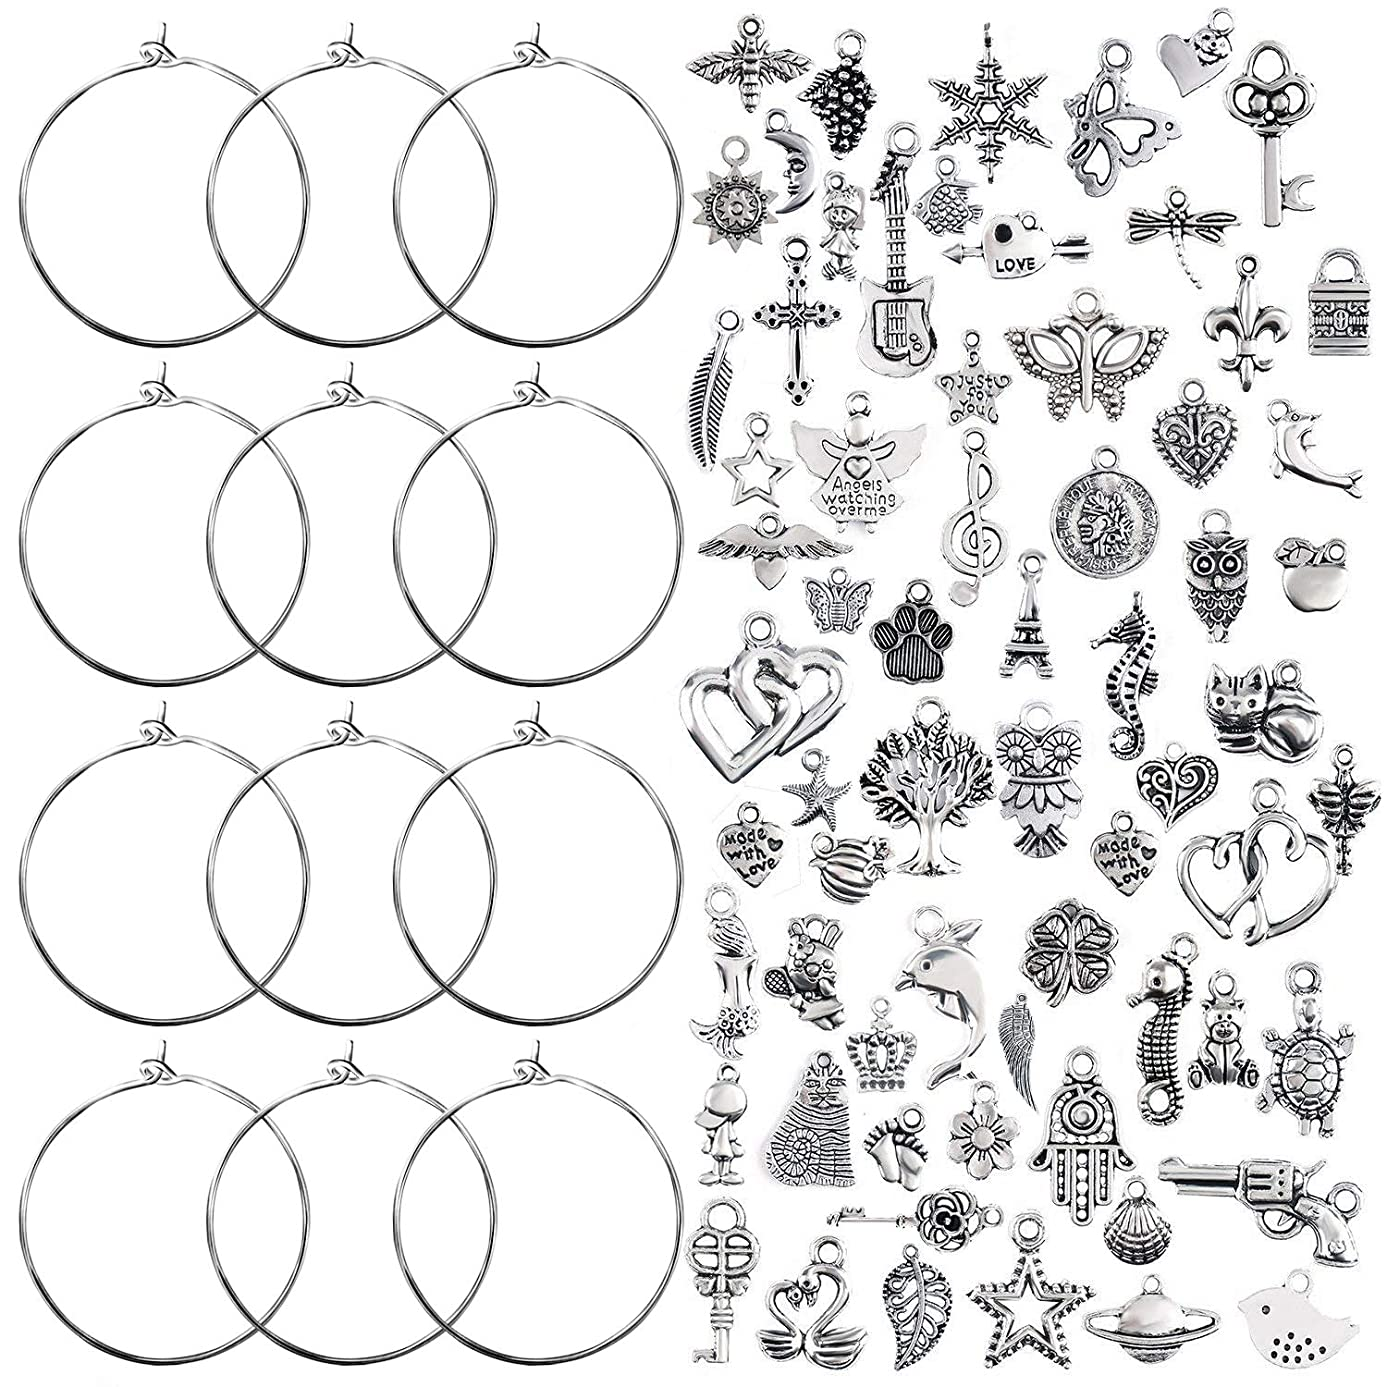 Jdesun 100 Pieces Wine Glass Charm Rings Earring Hoops and 100 Pieces Ocean Fish & Sea Charms Pendants for DIY Your Unique Wine Glass Marker